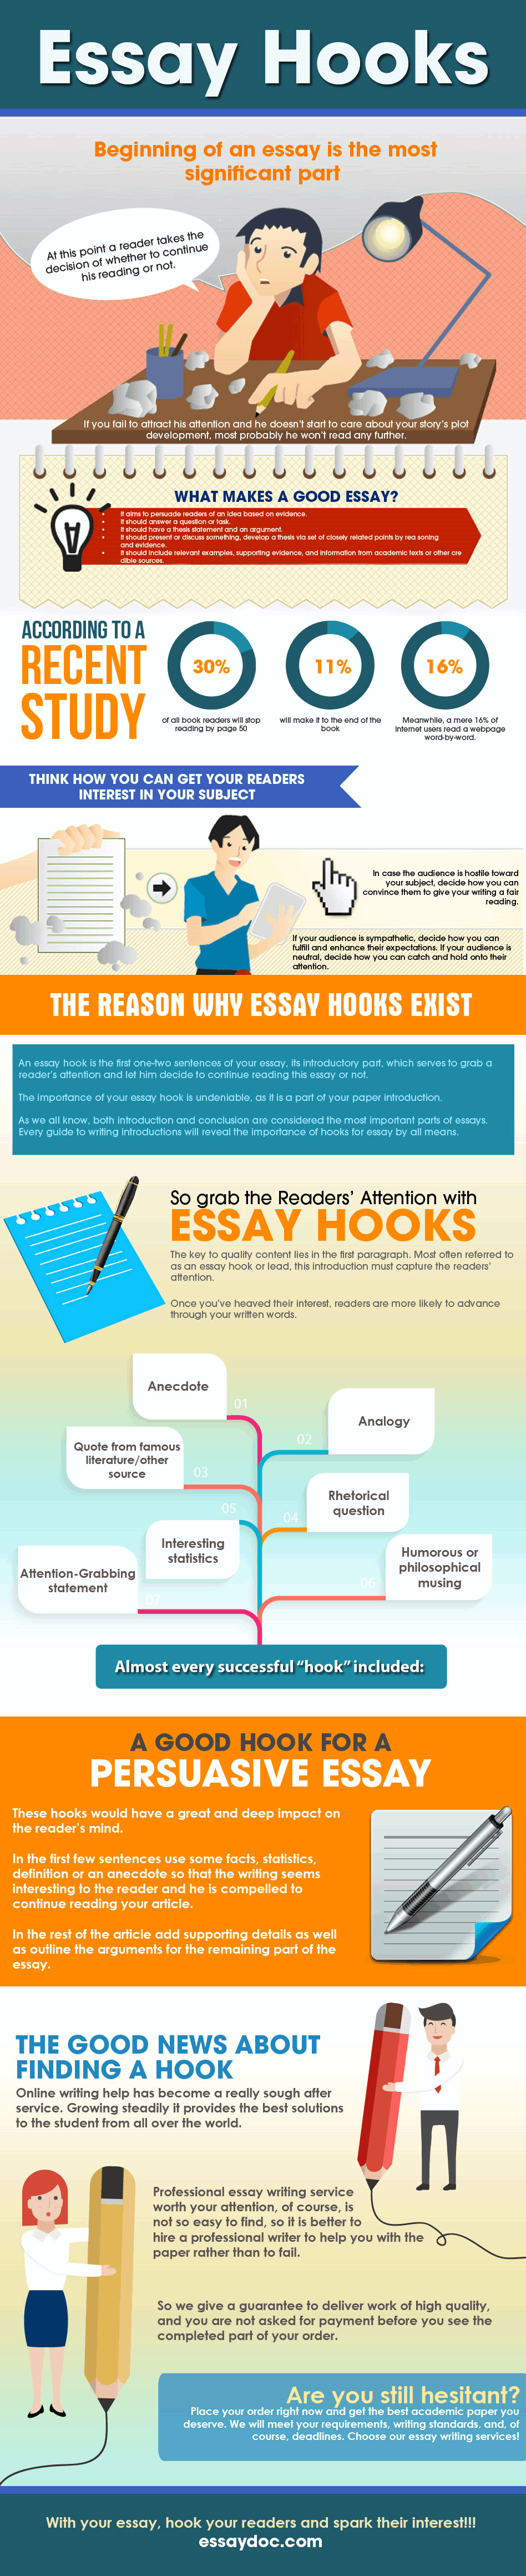 hook sentences for essays session writing applications writing essays test taking tips for session writing applications writing essays test taking